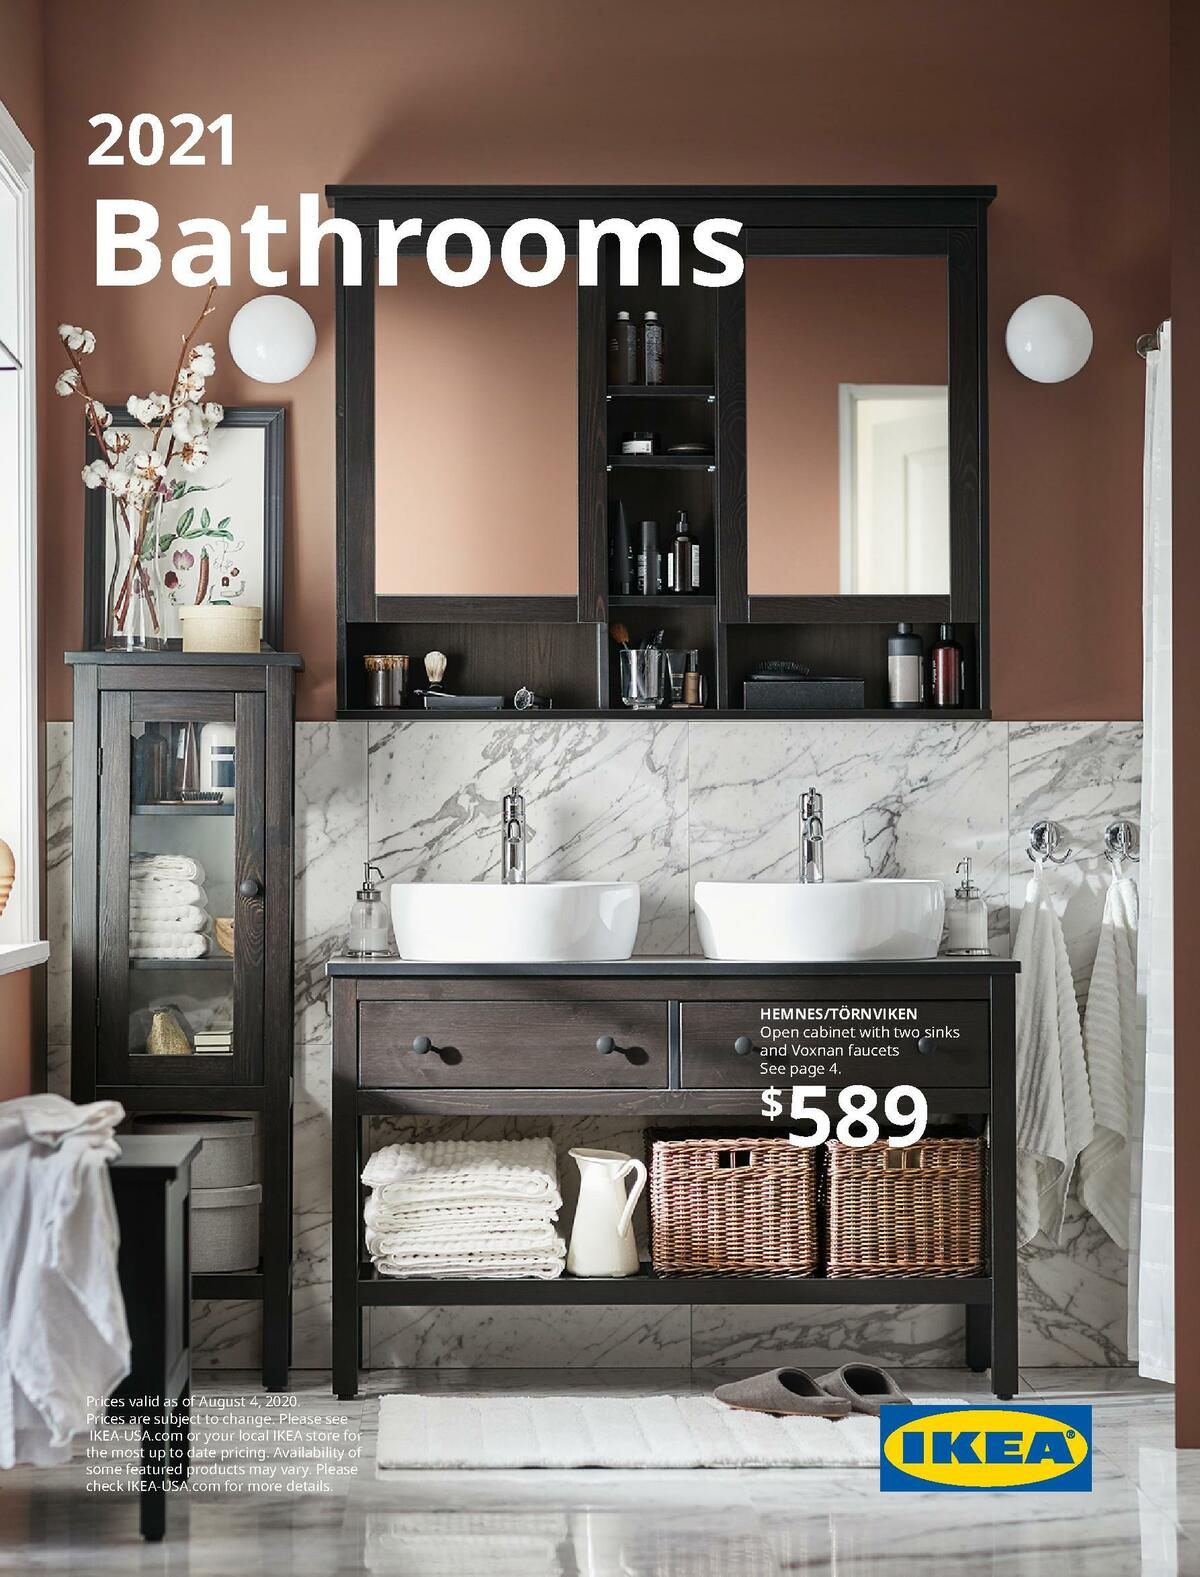 IKEA Bathrooms Brochure 2021 Weekly Ad from August 31